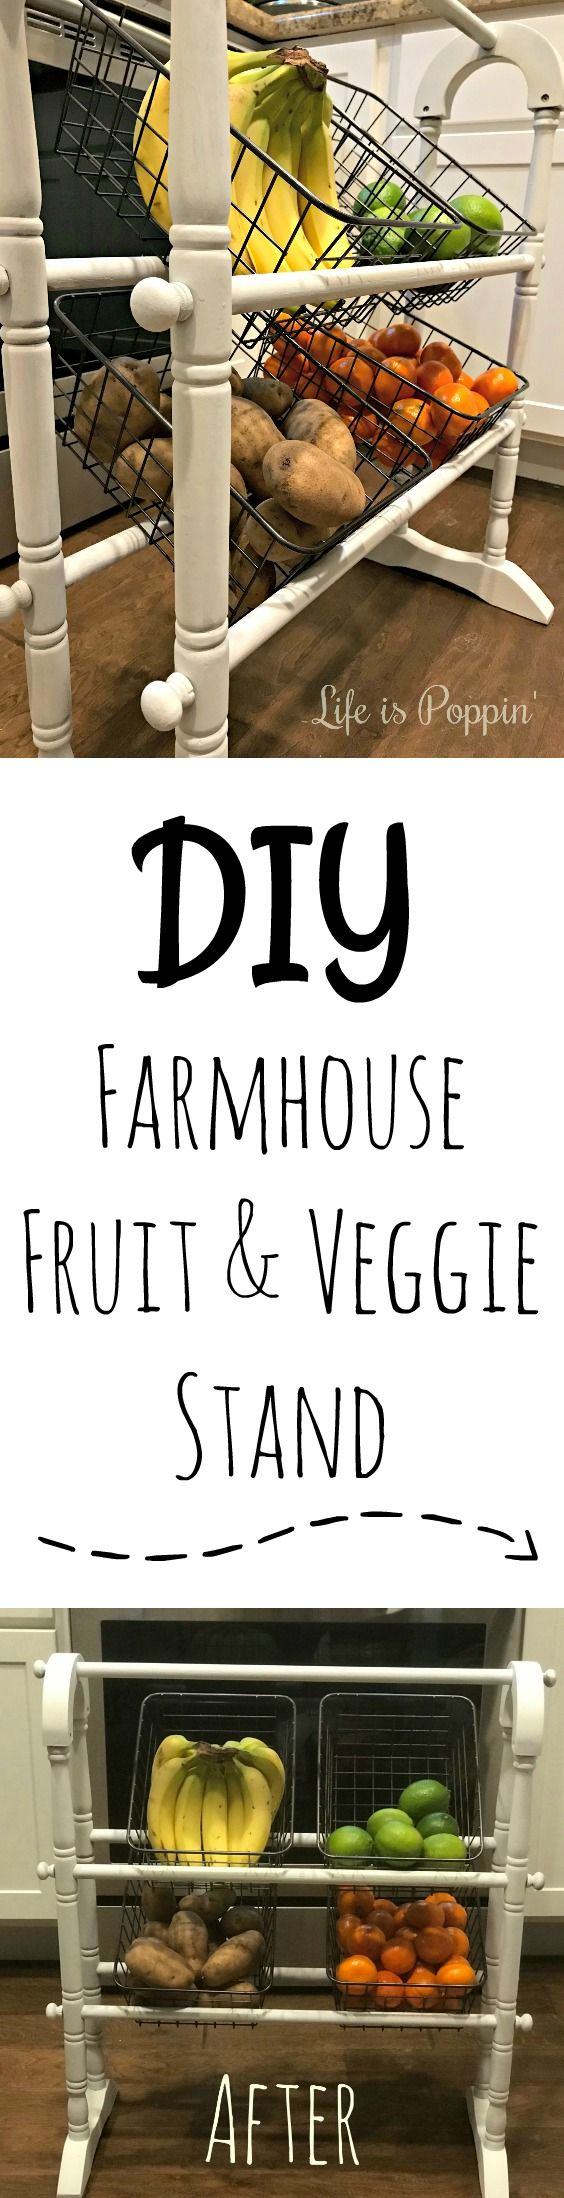 Unless you've been living under a rock, then I'm sure you are aware that farmhouse decor is all the rage. This fruit and veggie stand is what your kitchen has been missing.   #Farmhouse #DIY #Upcycle